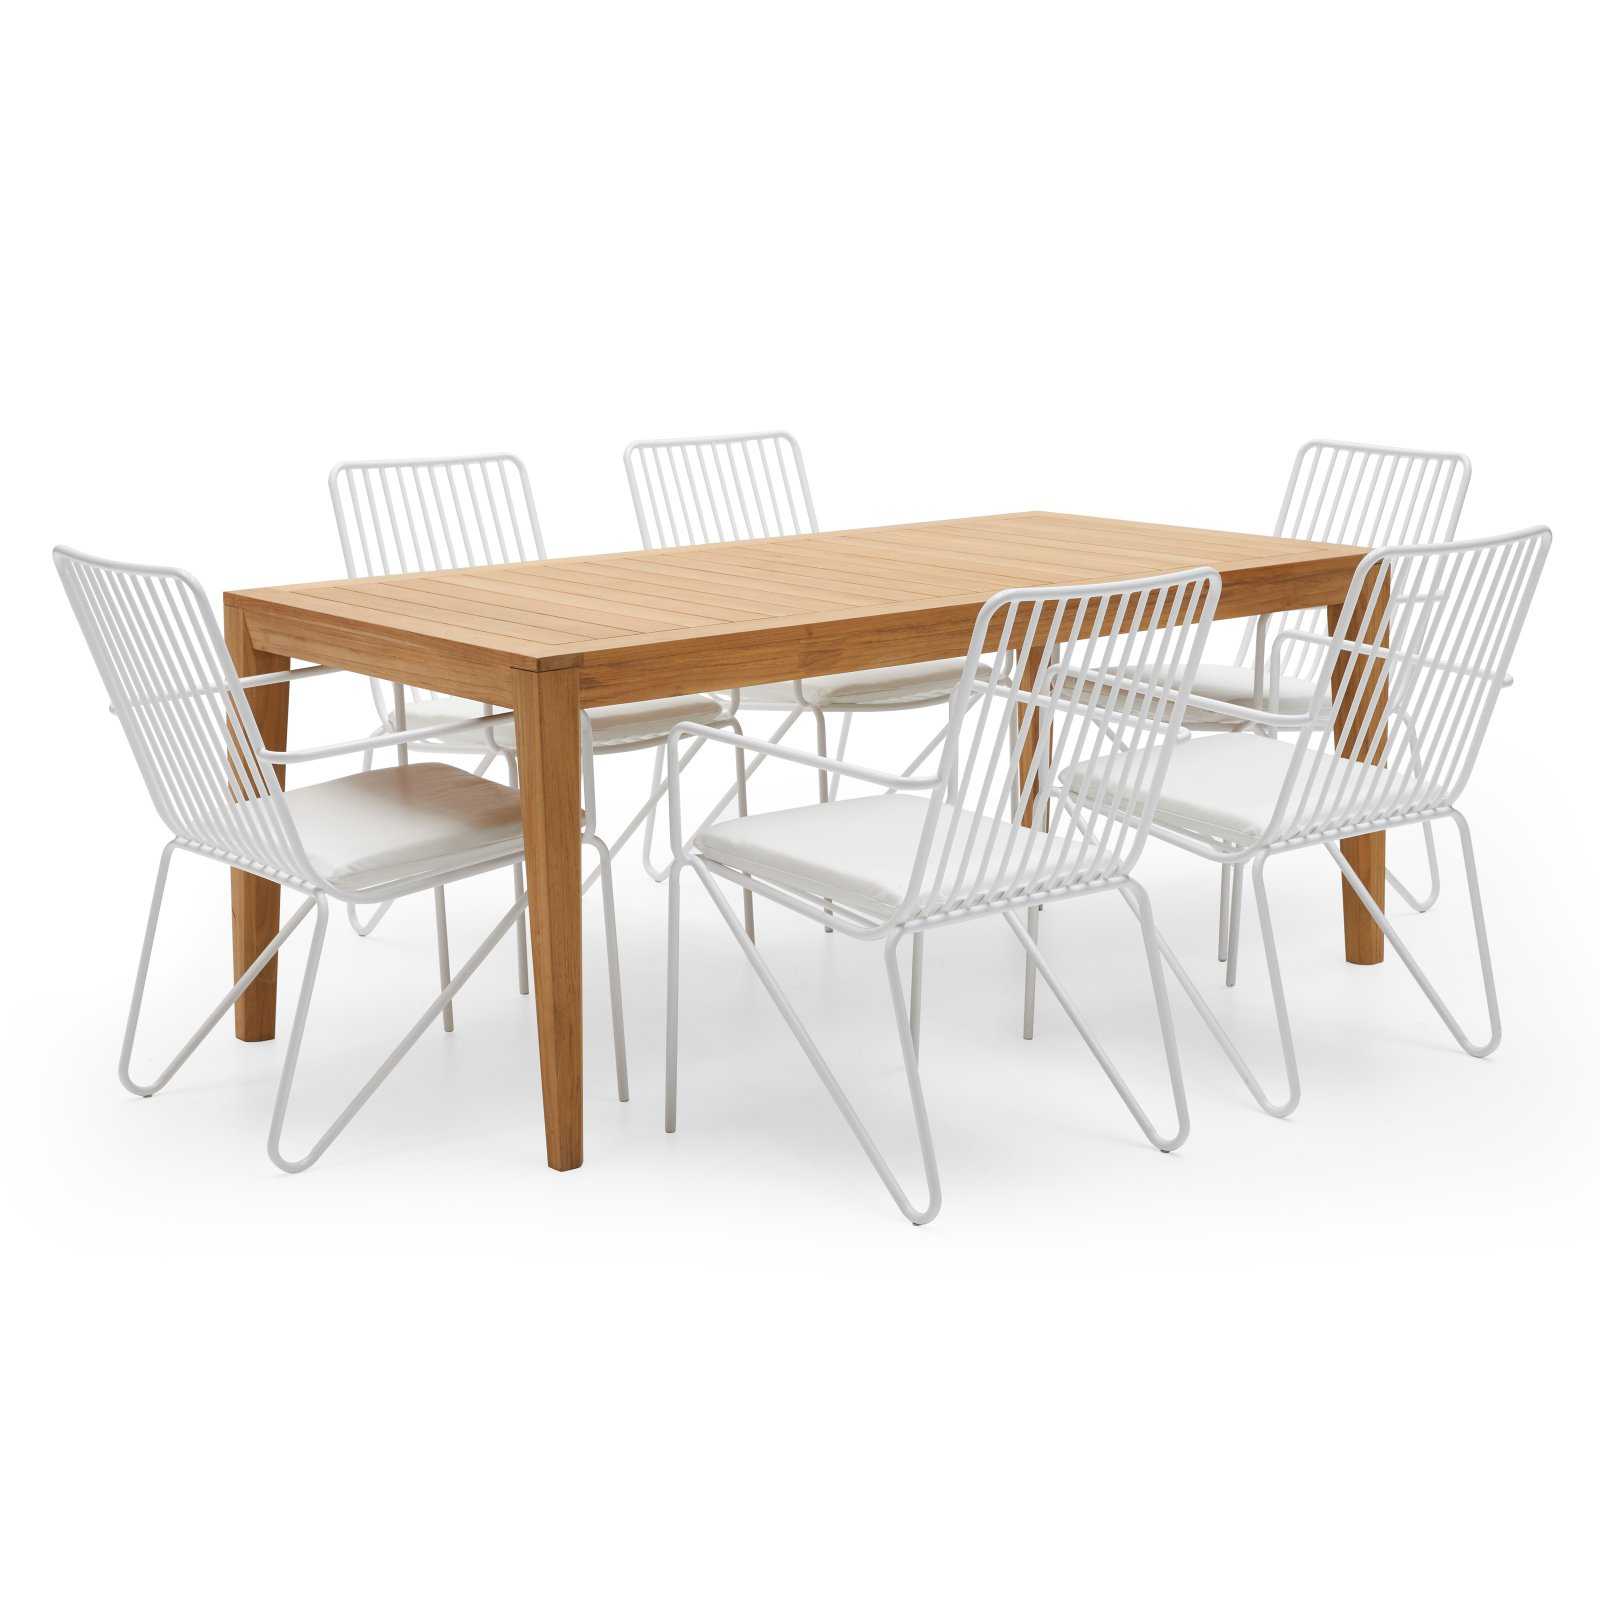 MoDRN Industrial Teak and Wire 7 Piece Patio Dining Room Set by